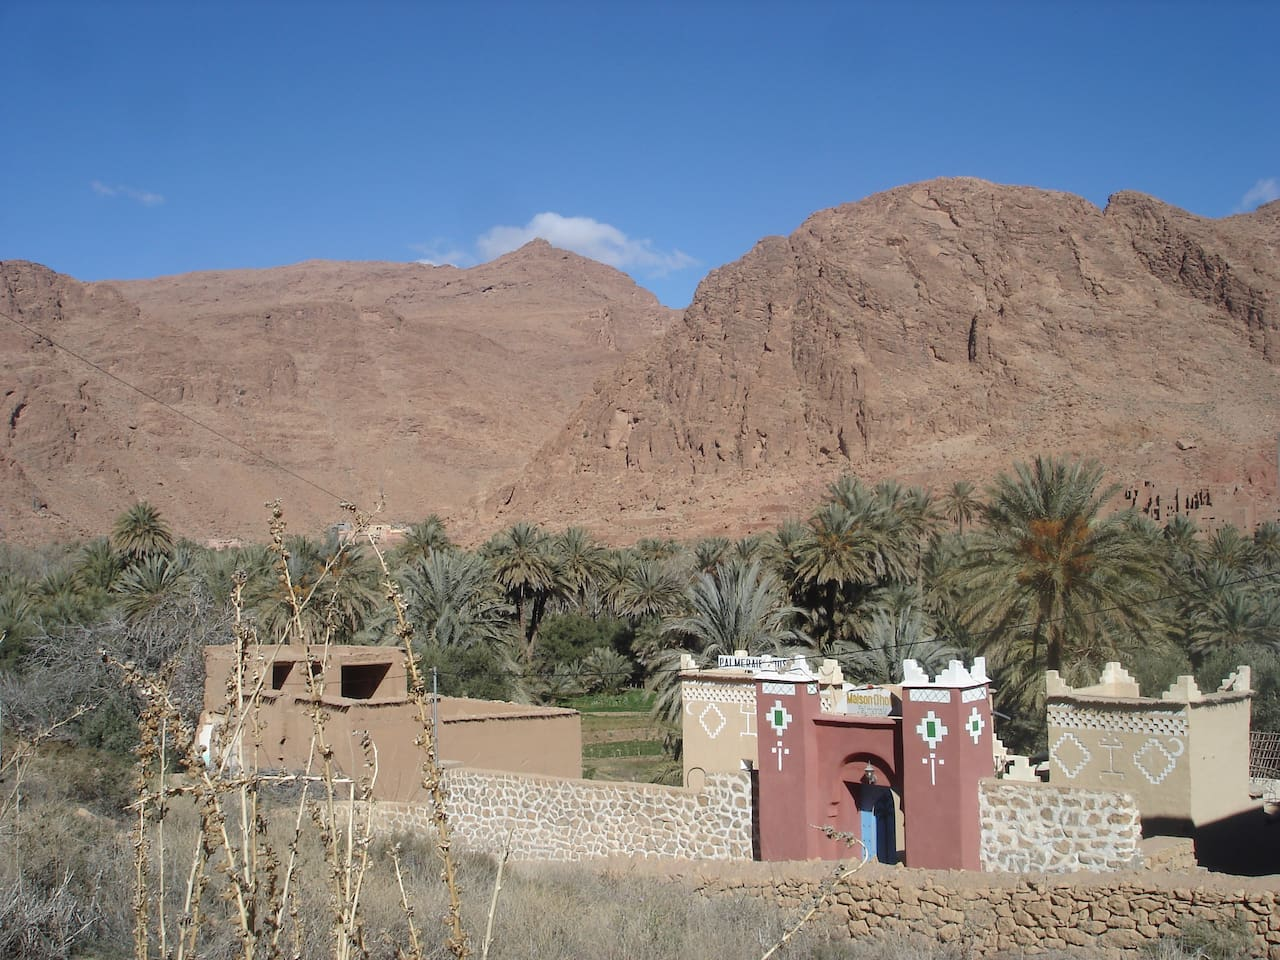 palmeraie guest house at 7km in the road to todra gorge from tinghir